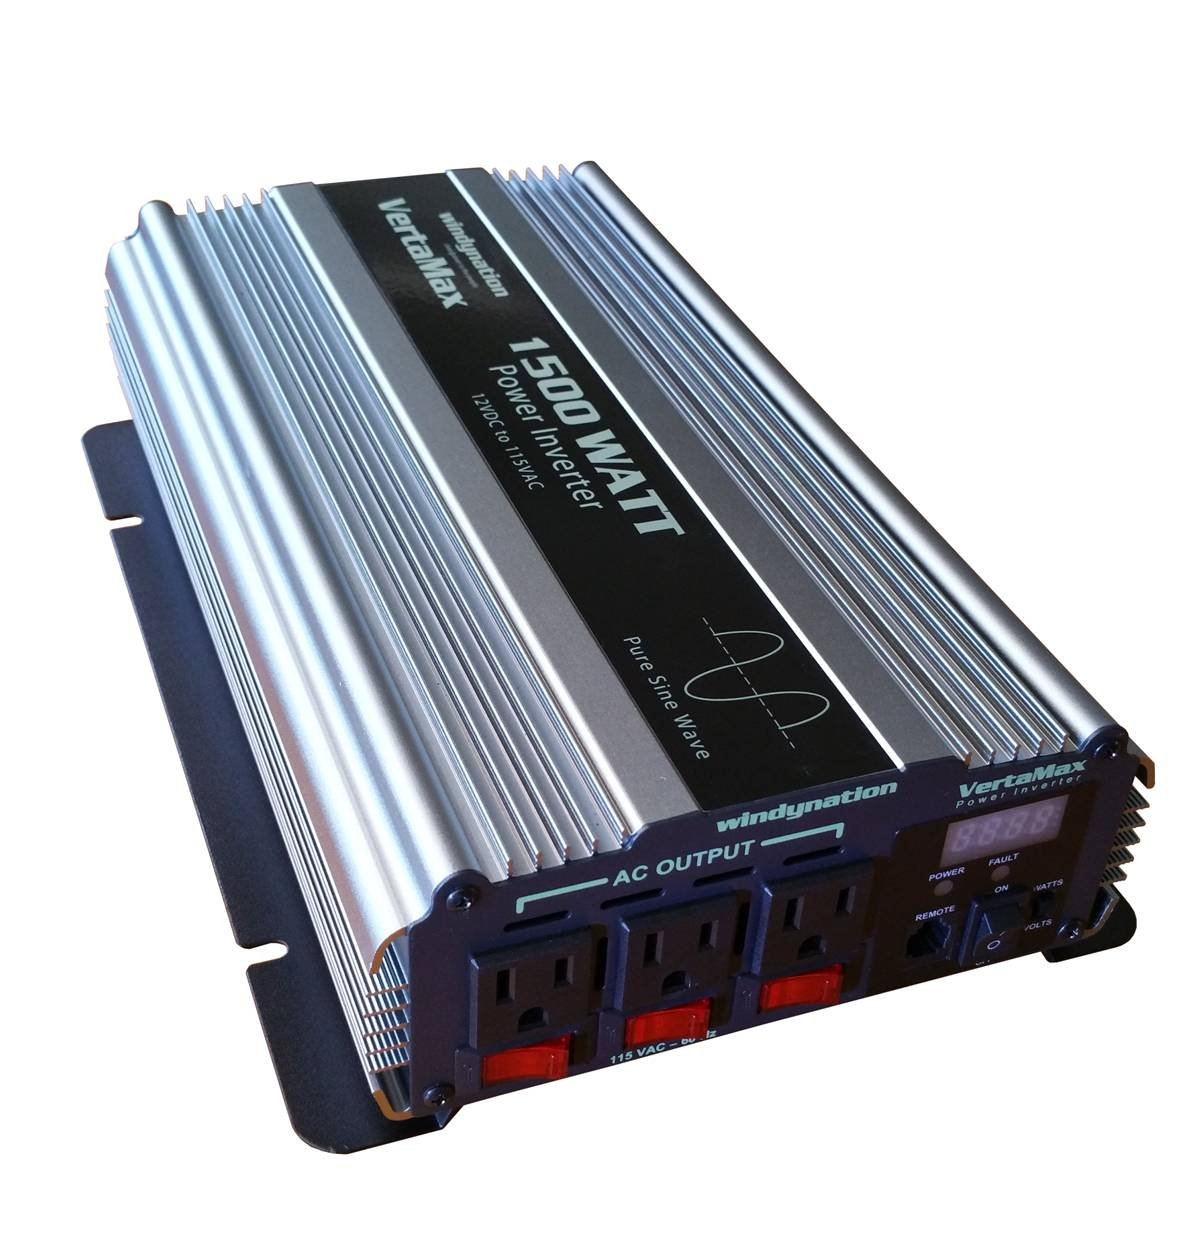 Vertamax Pure Sine Wave 1500 Watt 3000w Surge 12v Inverter Circuit Homemade Designs Just For You Power Dc To 115 Ac Car Solar Off Grid Rv Back Up Electronics